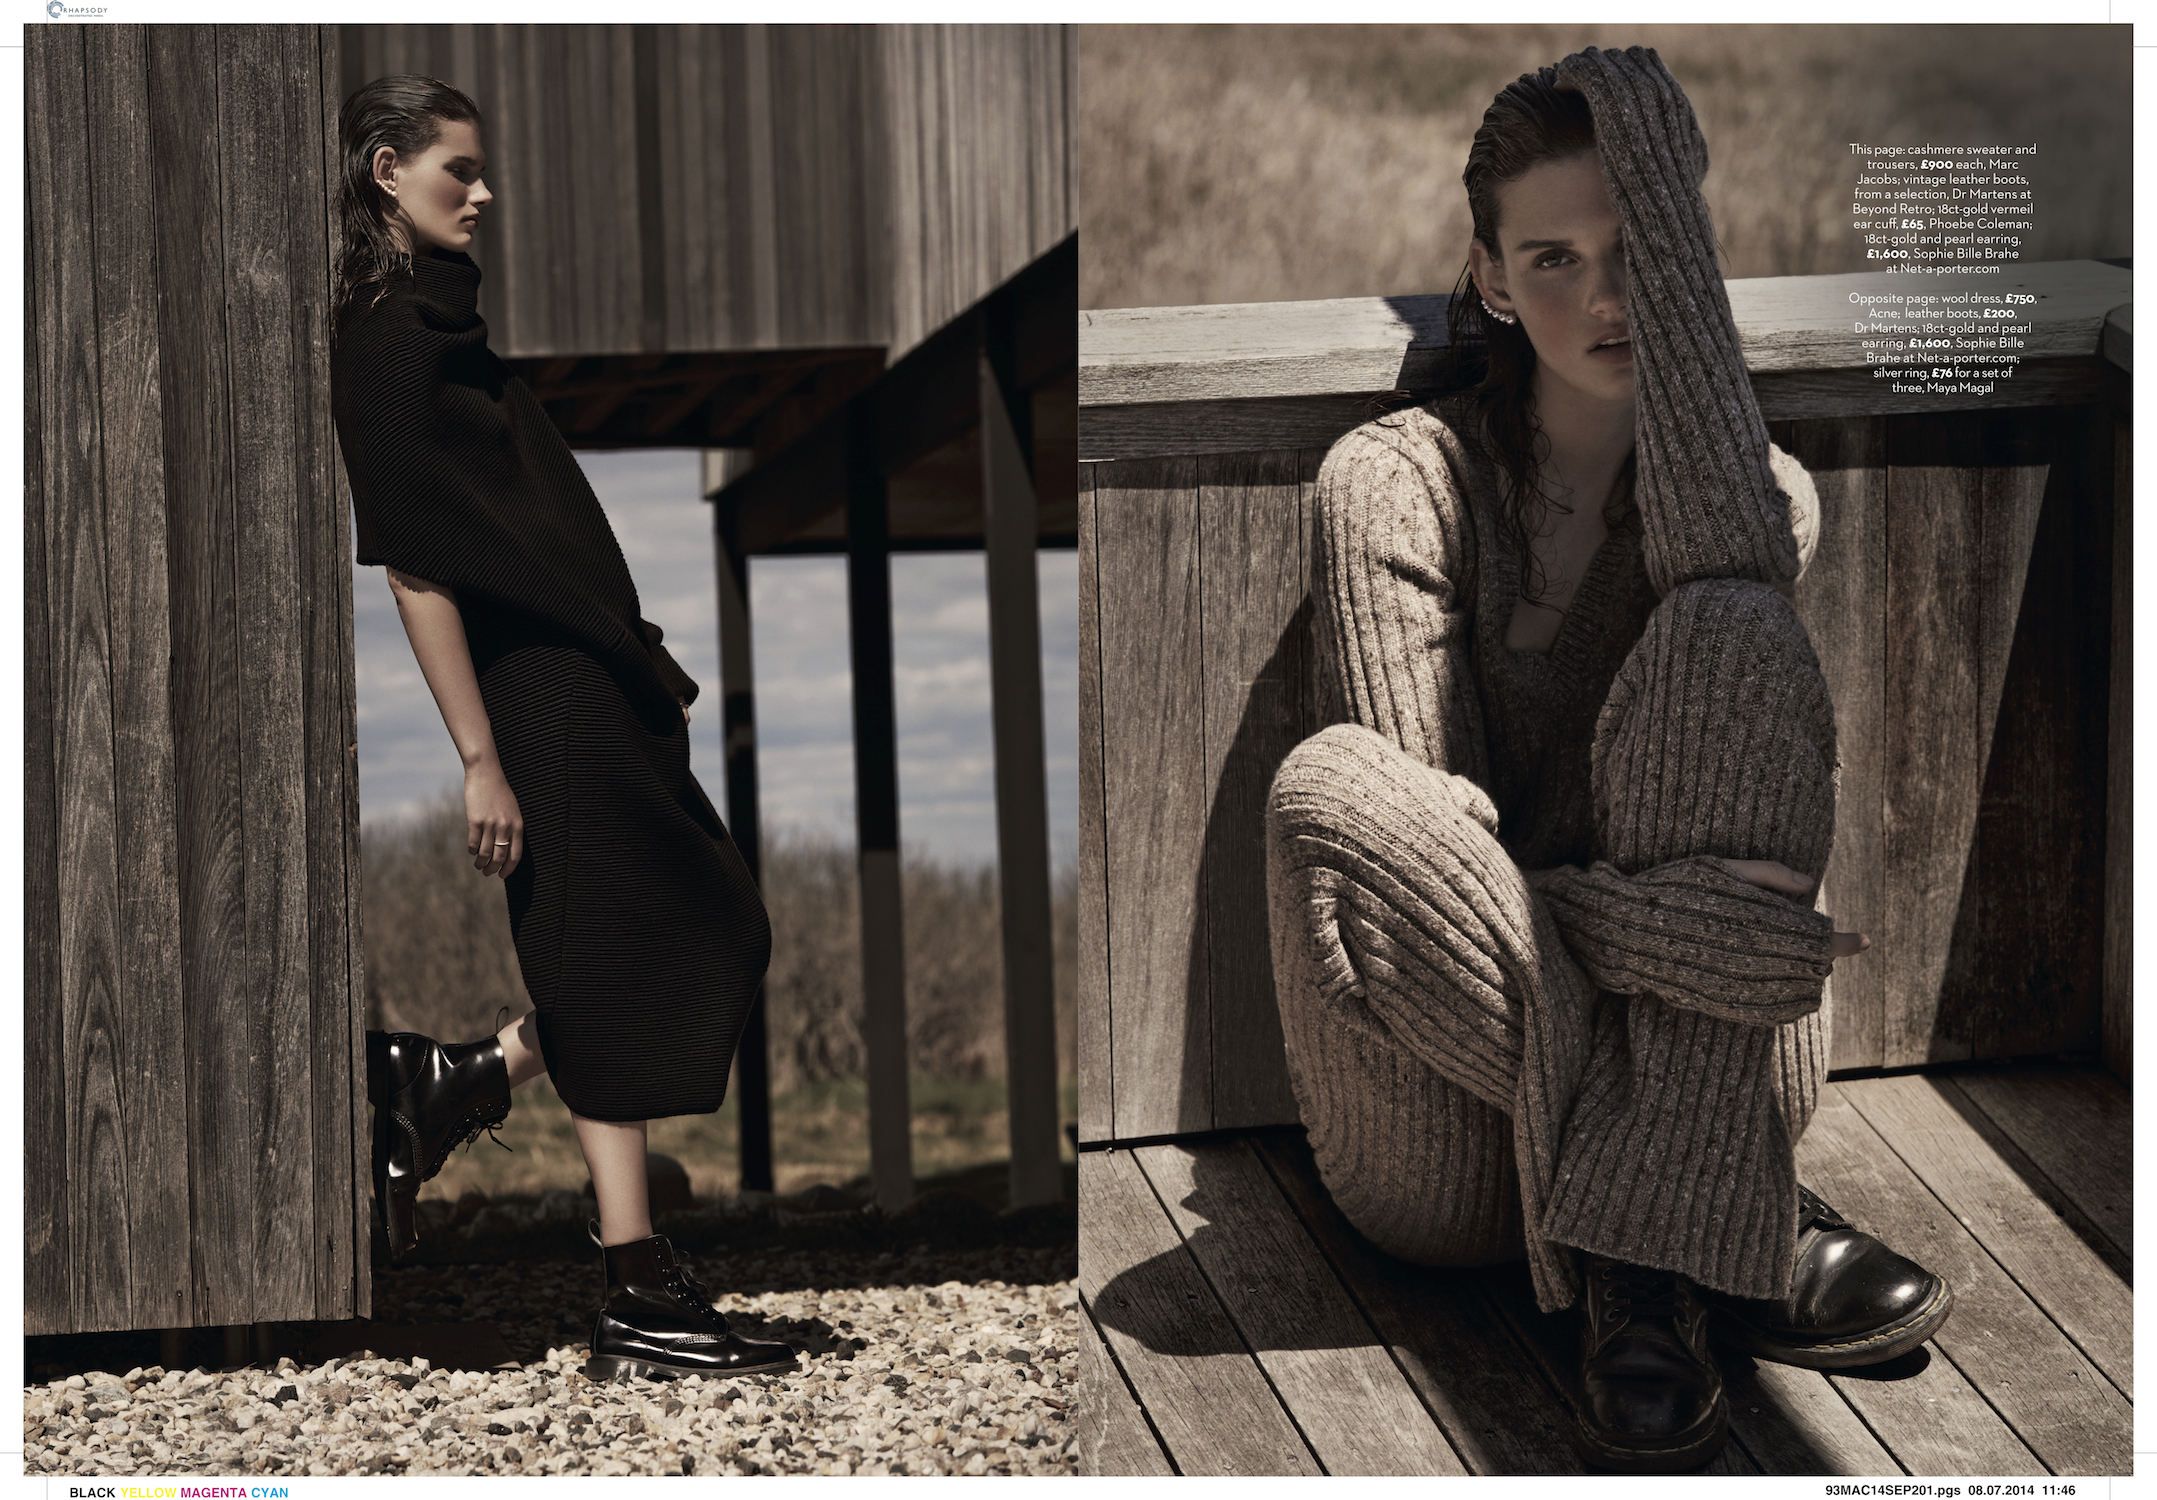 marie claire uk photo shoot by james macari and county fair productions in the hamptons 6